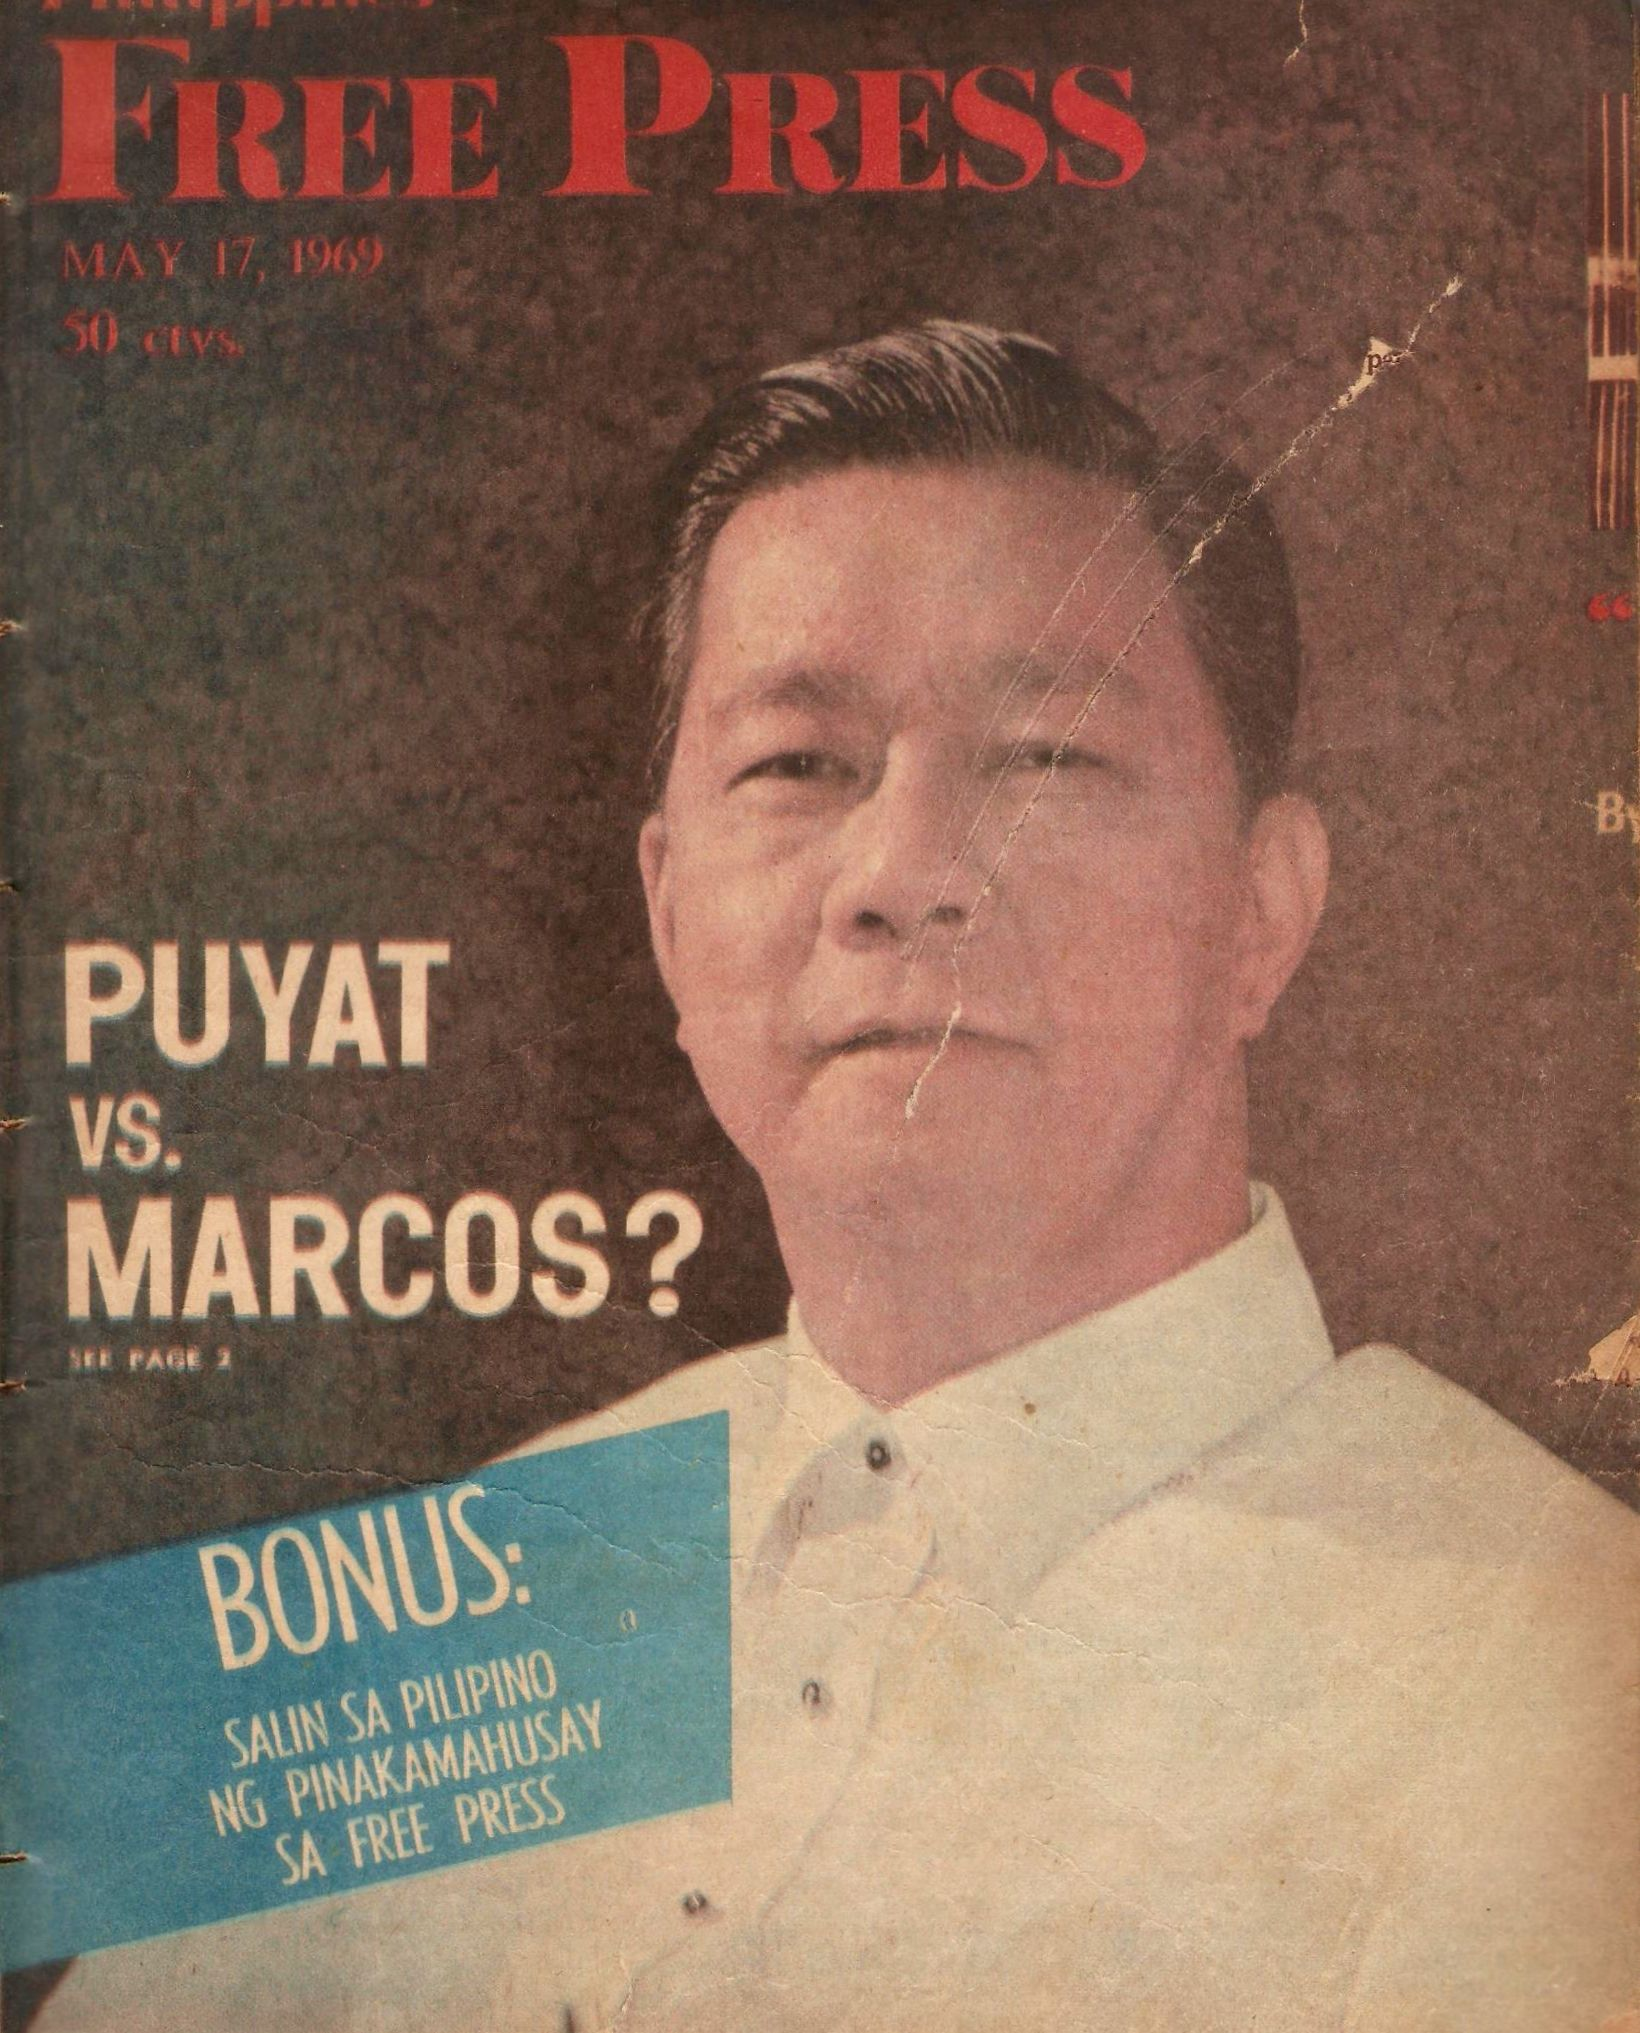 1969 Philippine Free Press Book cover, History, Olds